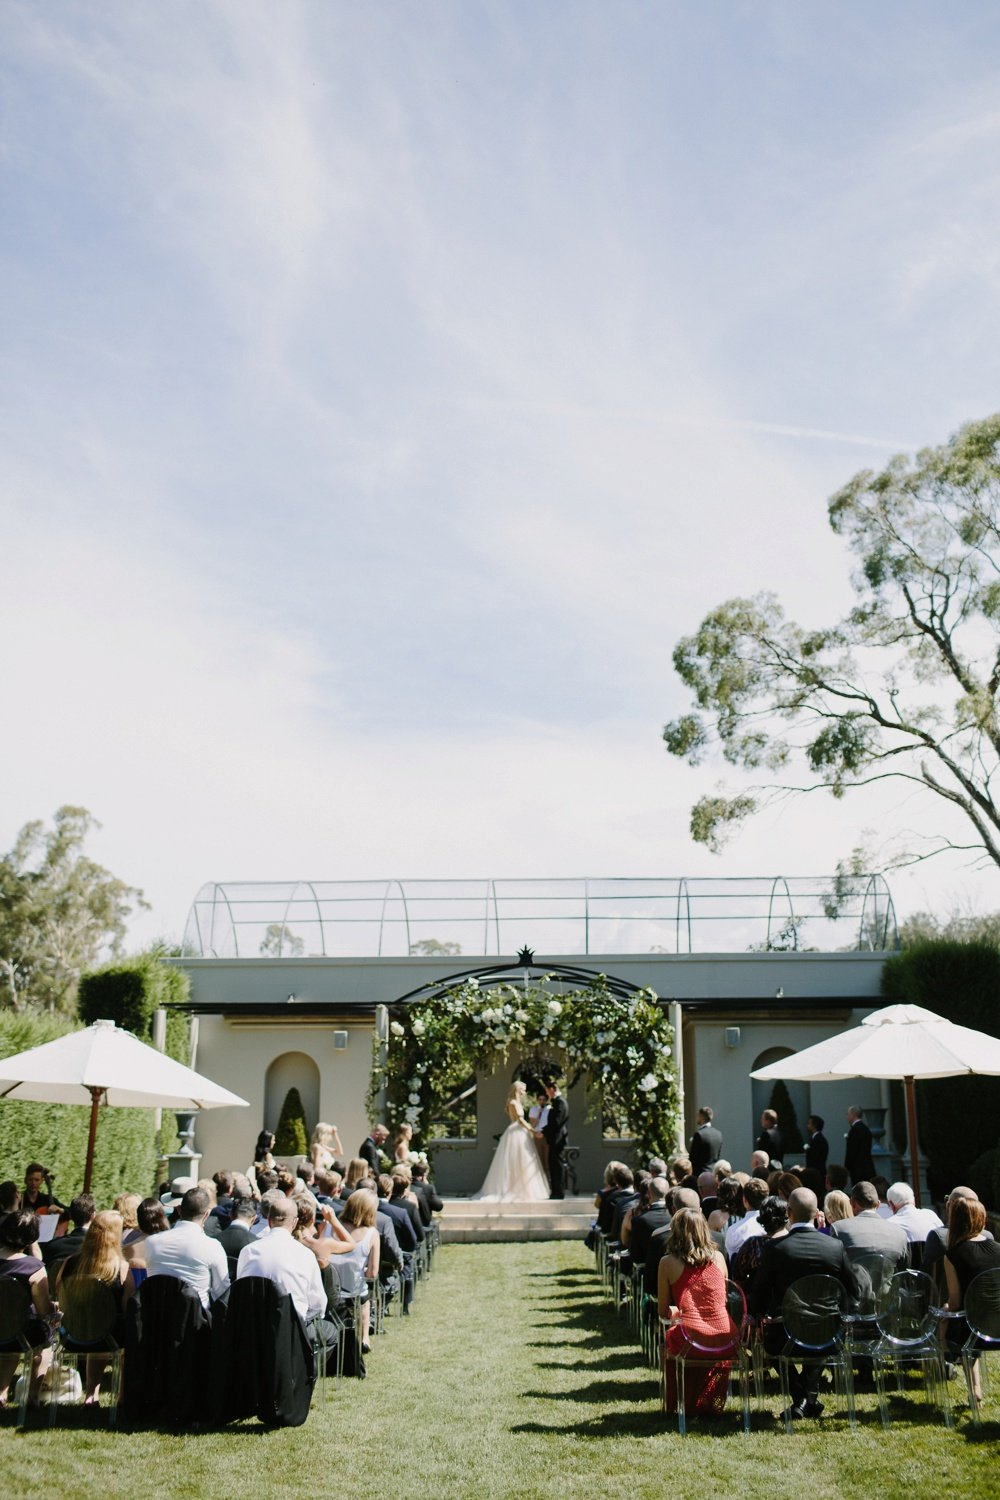 Hopewood House - Wedding Day Gallery - Heart and Colour Photography - Candice and Adam - The Ceremony - Chapel and Lawn.jpeg